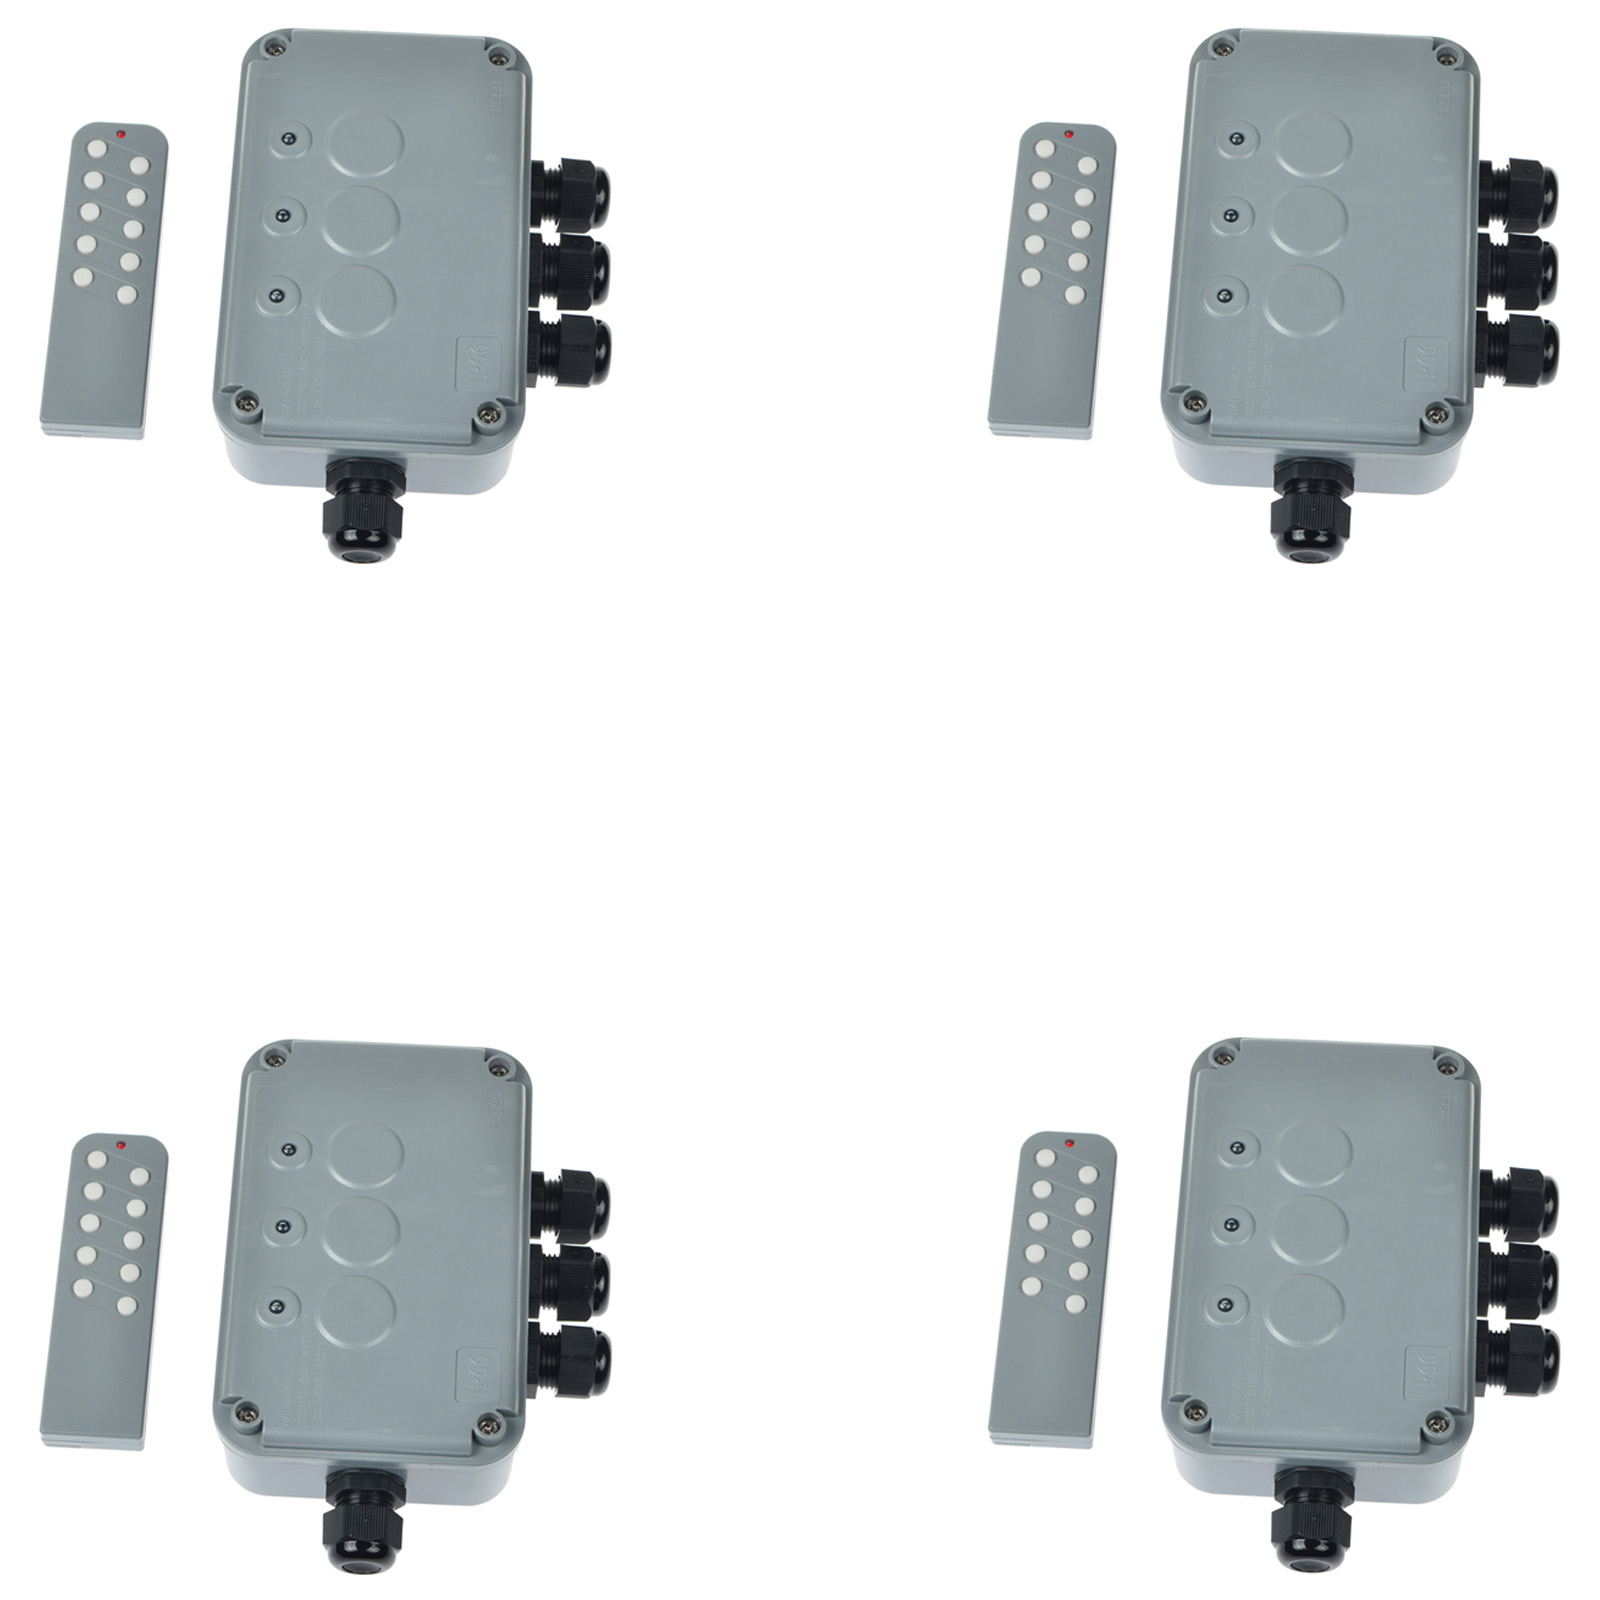 4 PK Weatherproof Exterior Outdoor Light Switch Garden 15 Amp IP66 3 ...